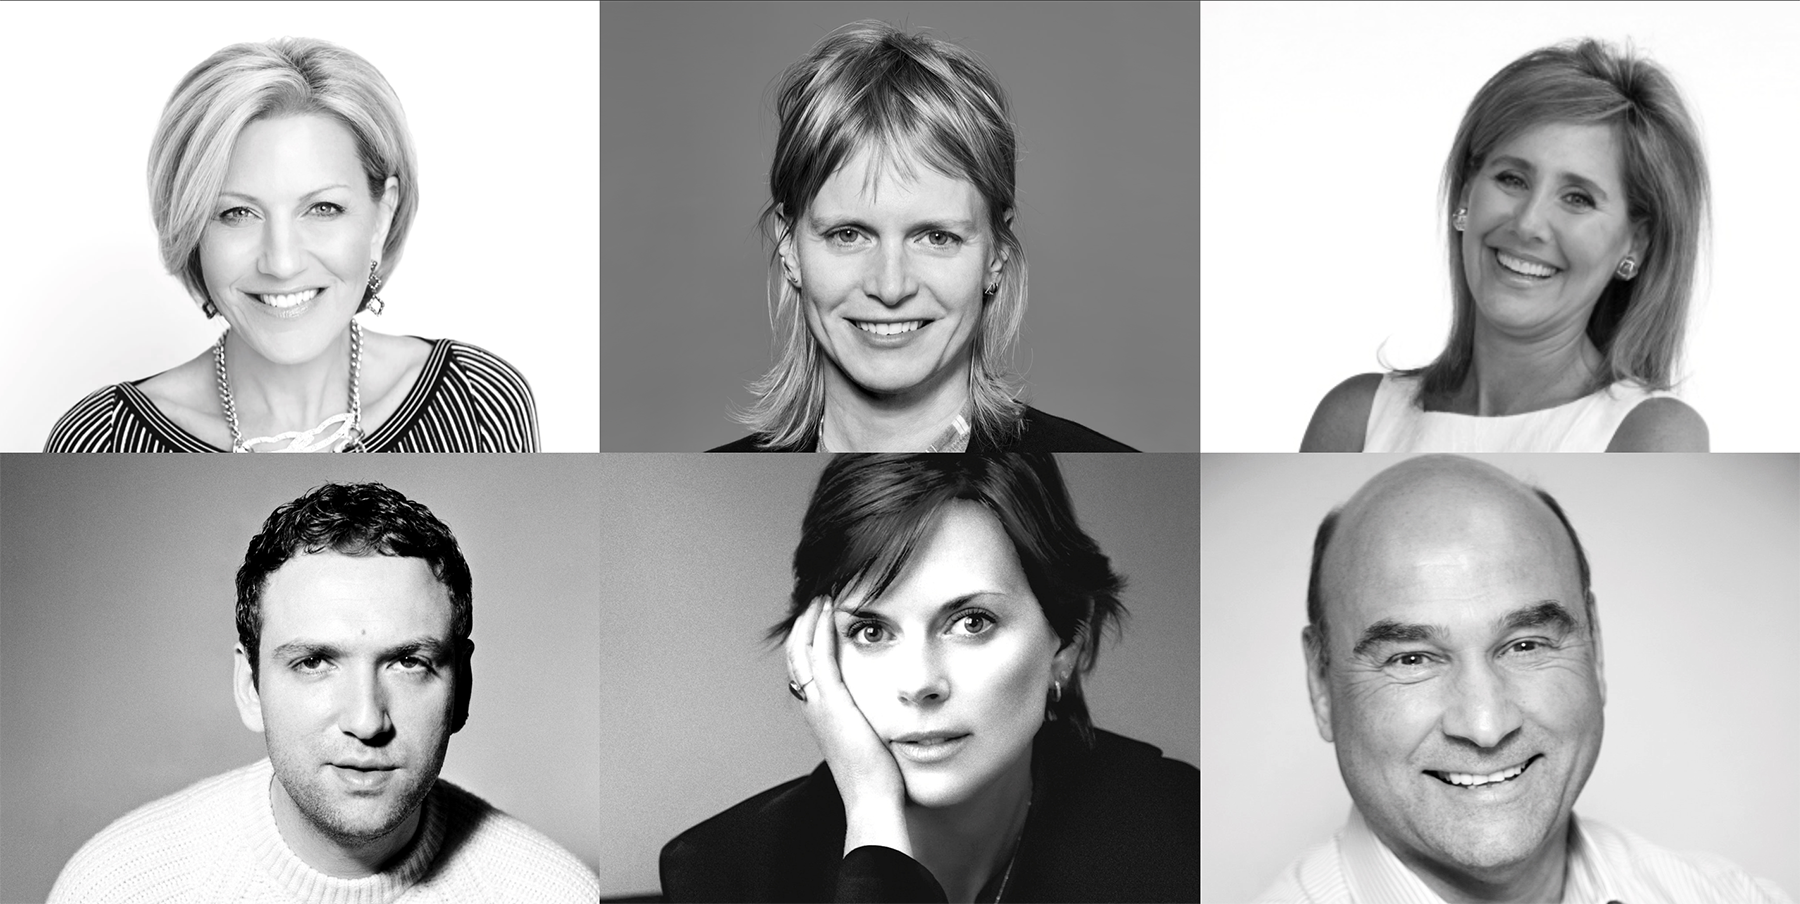 Bold Moves - Tanja Ruhnke to Valentino, Bruno Sialelli to Lanvin, Waldberg to Calvin Klein